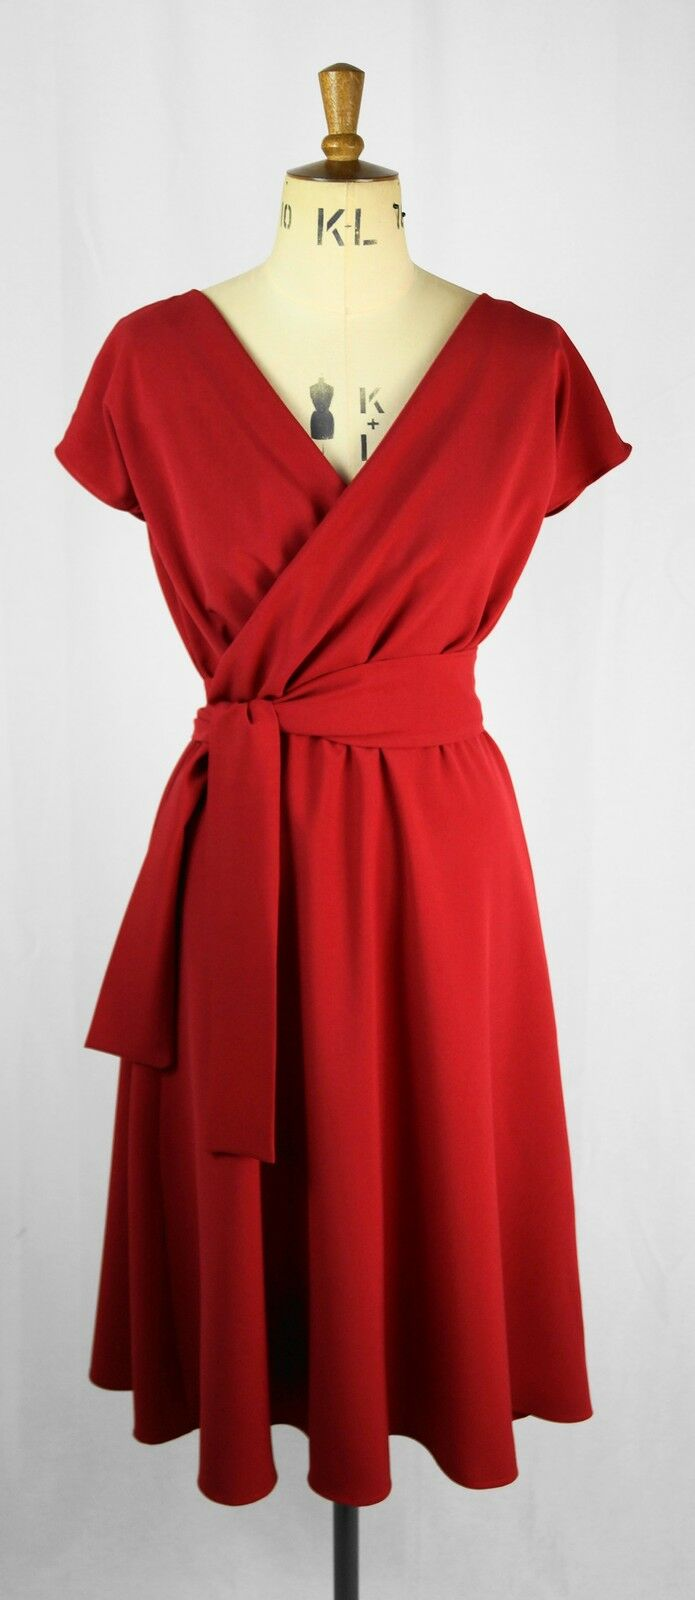 Baylis & Knight Ruby Red Short Sleeve WRAP Dress Retro Pin Up 40's Wedding guest